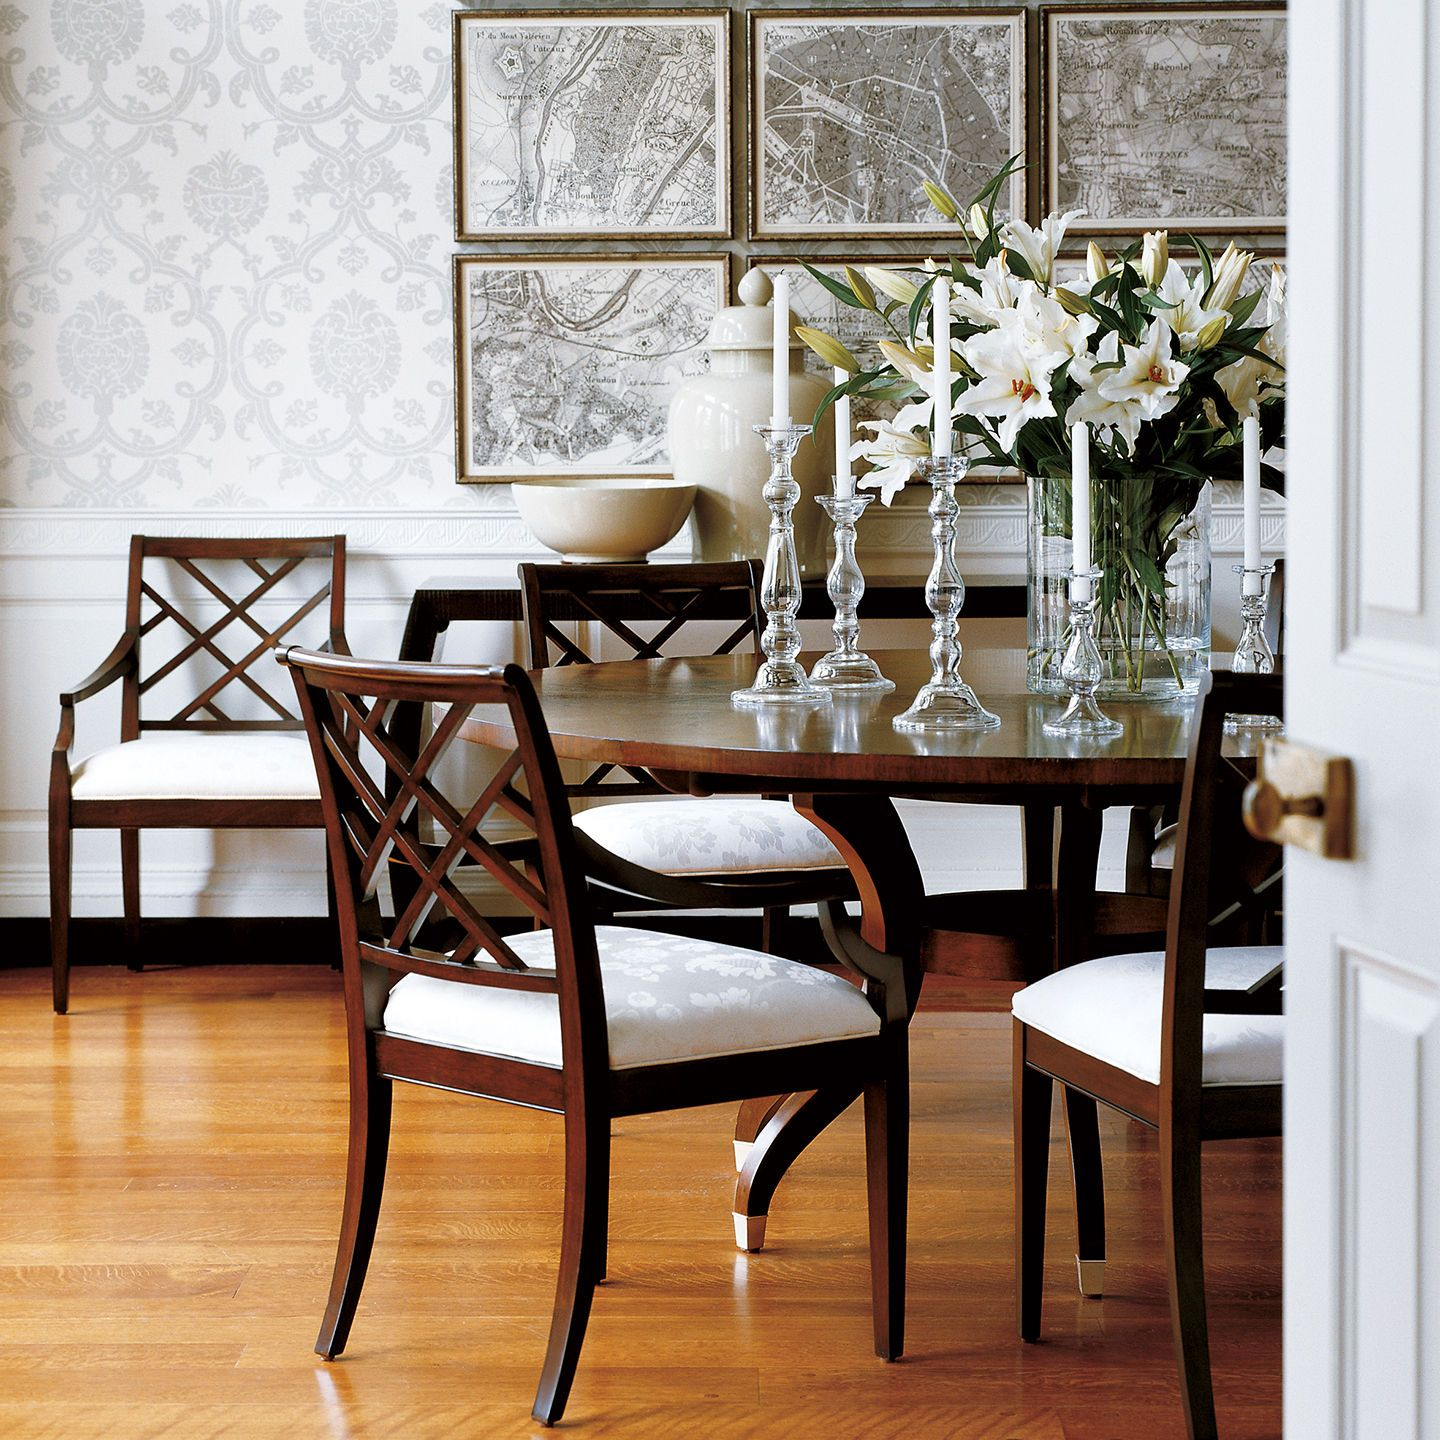 Ethan Allen Iconics Ashcroft Dining Table Ethan Allen